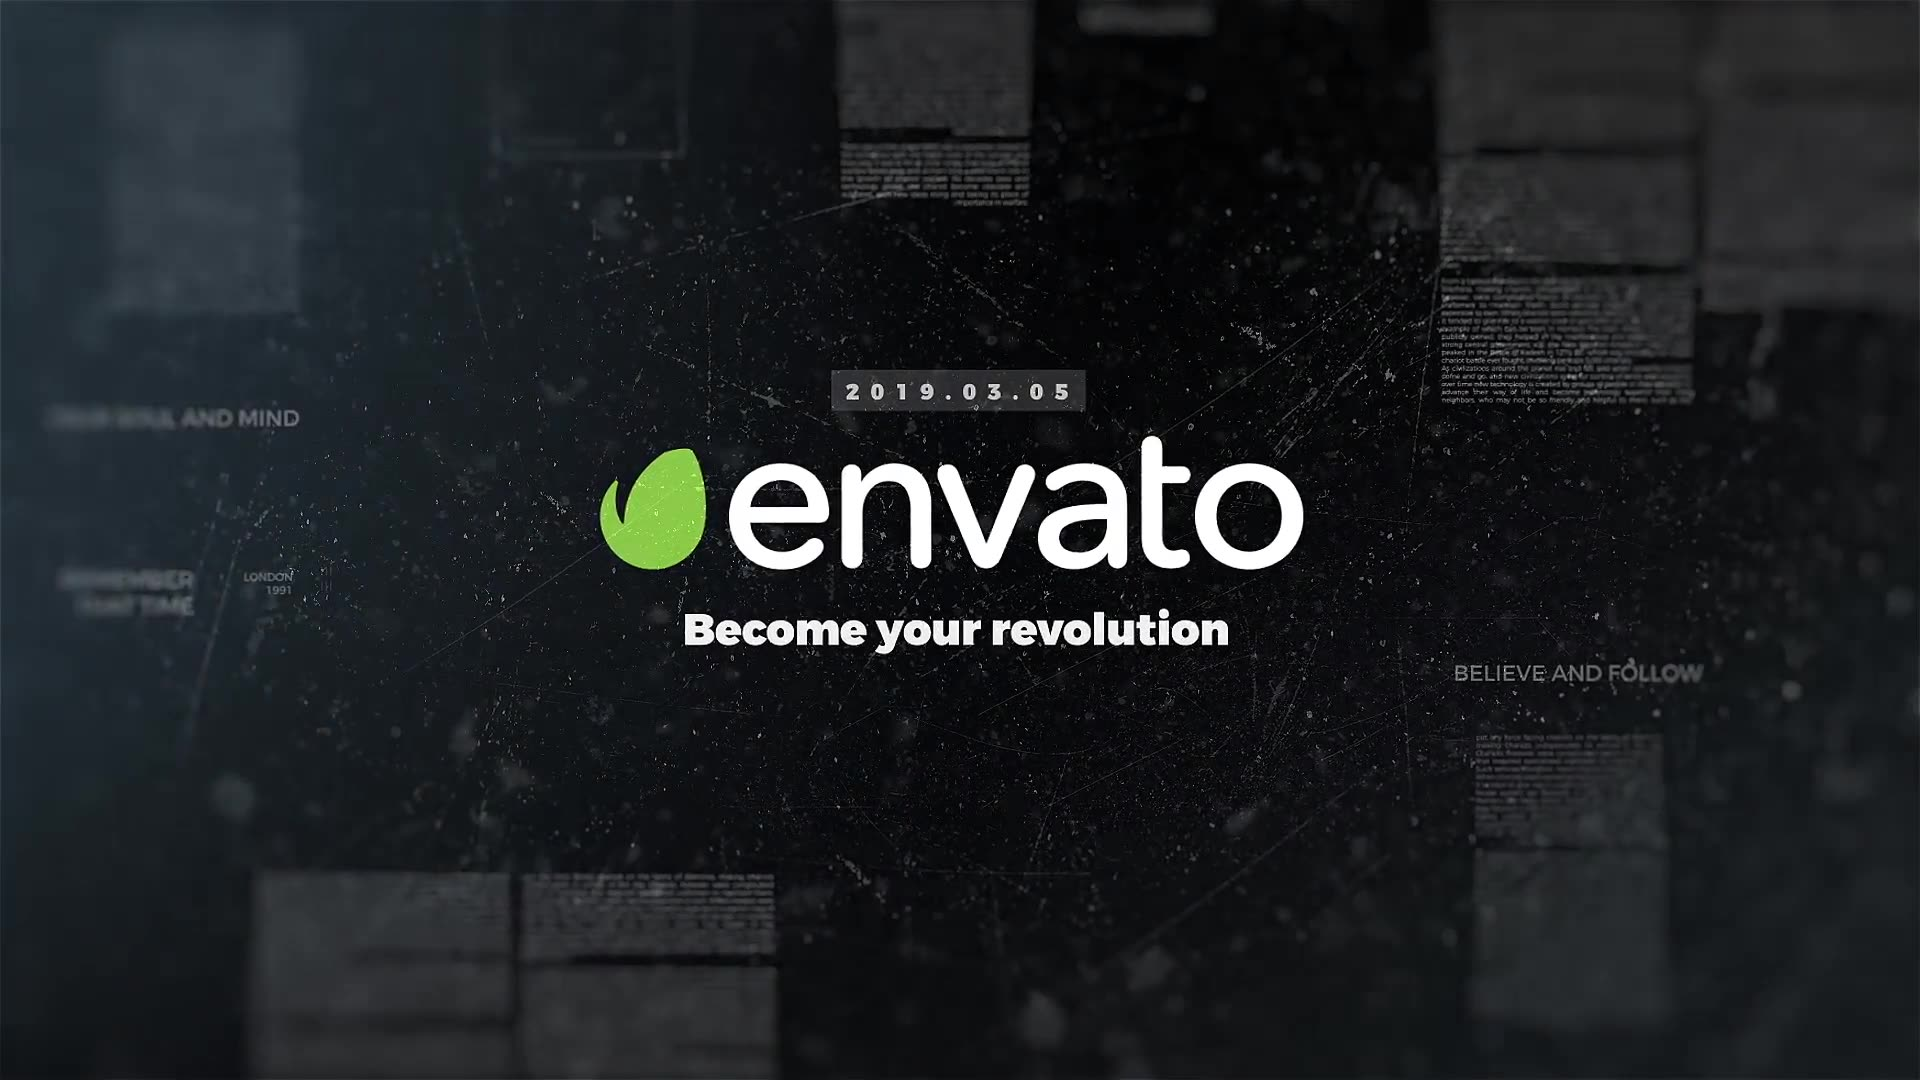 Massive Epic Cinematic Slideshow - Download Videohive 22111031